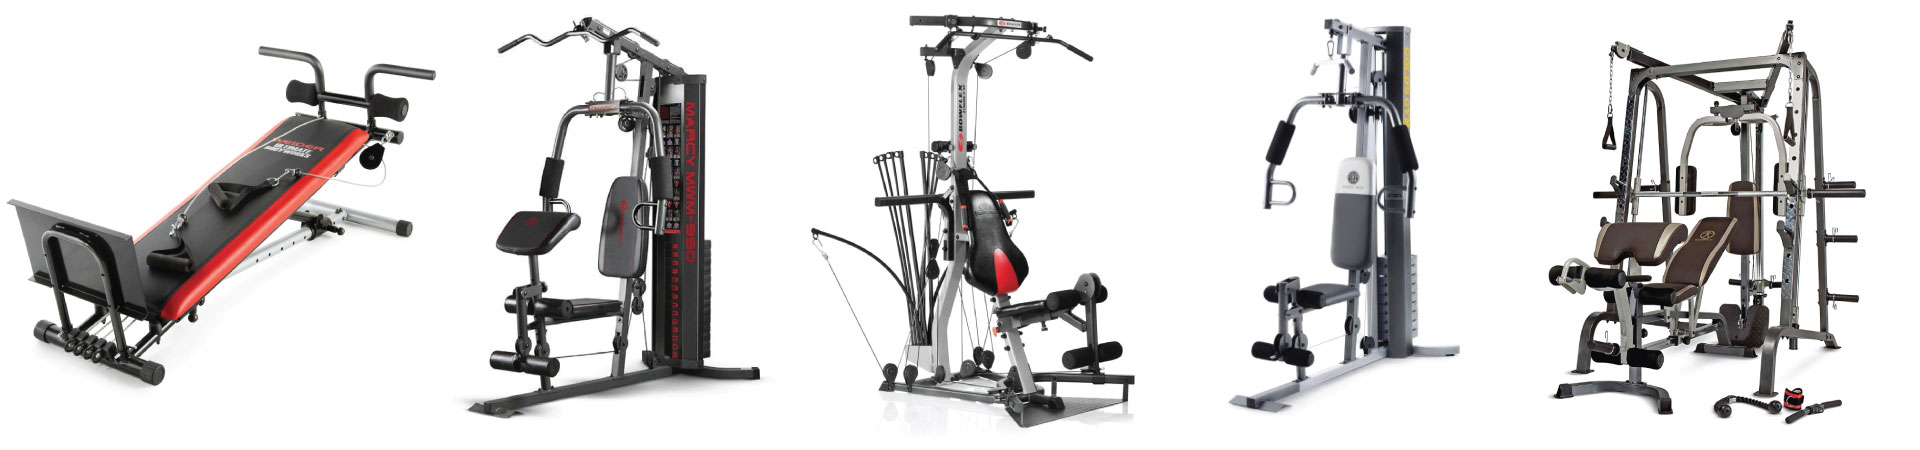 best home gym 2018